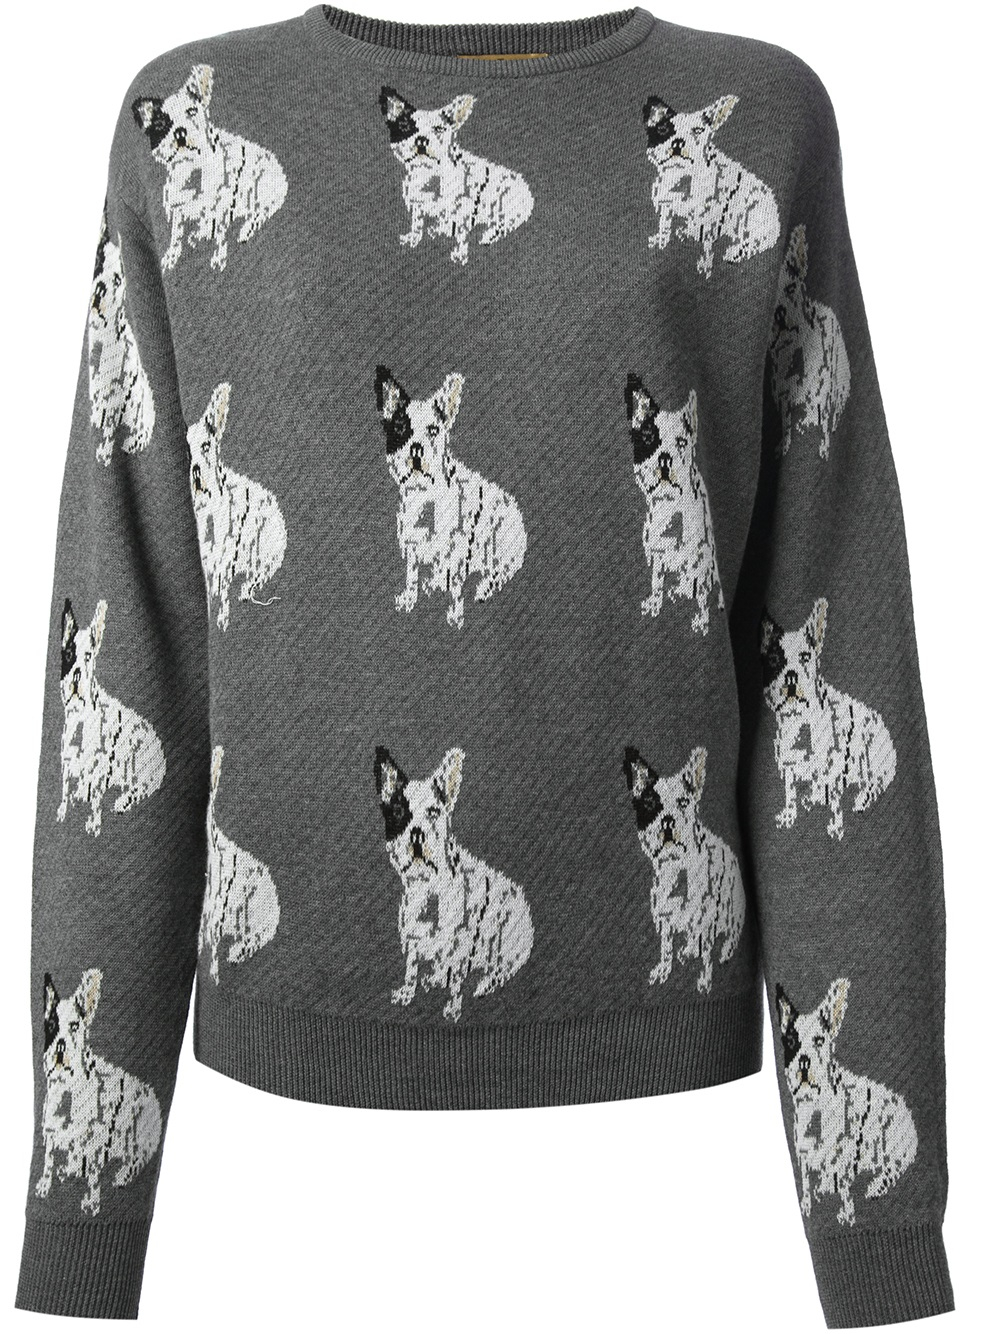 Knitting Patterns For Bulldog Sweaters : Peter jensen Bulldog Sweater in Gray Lyst